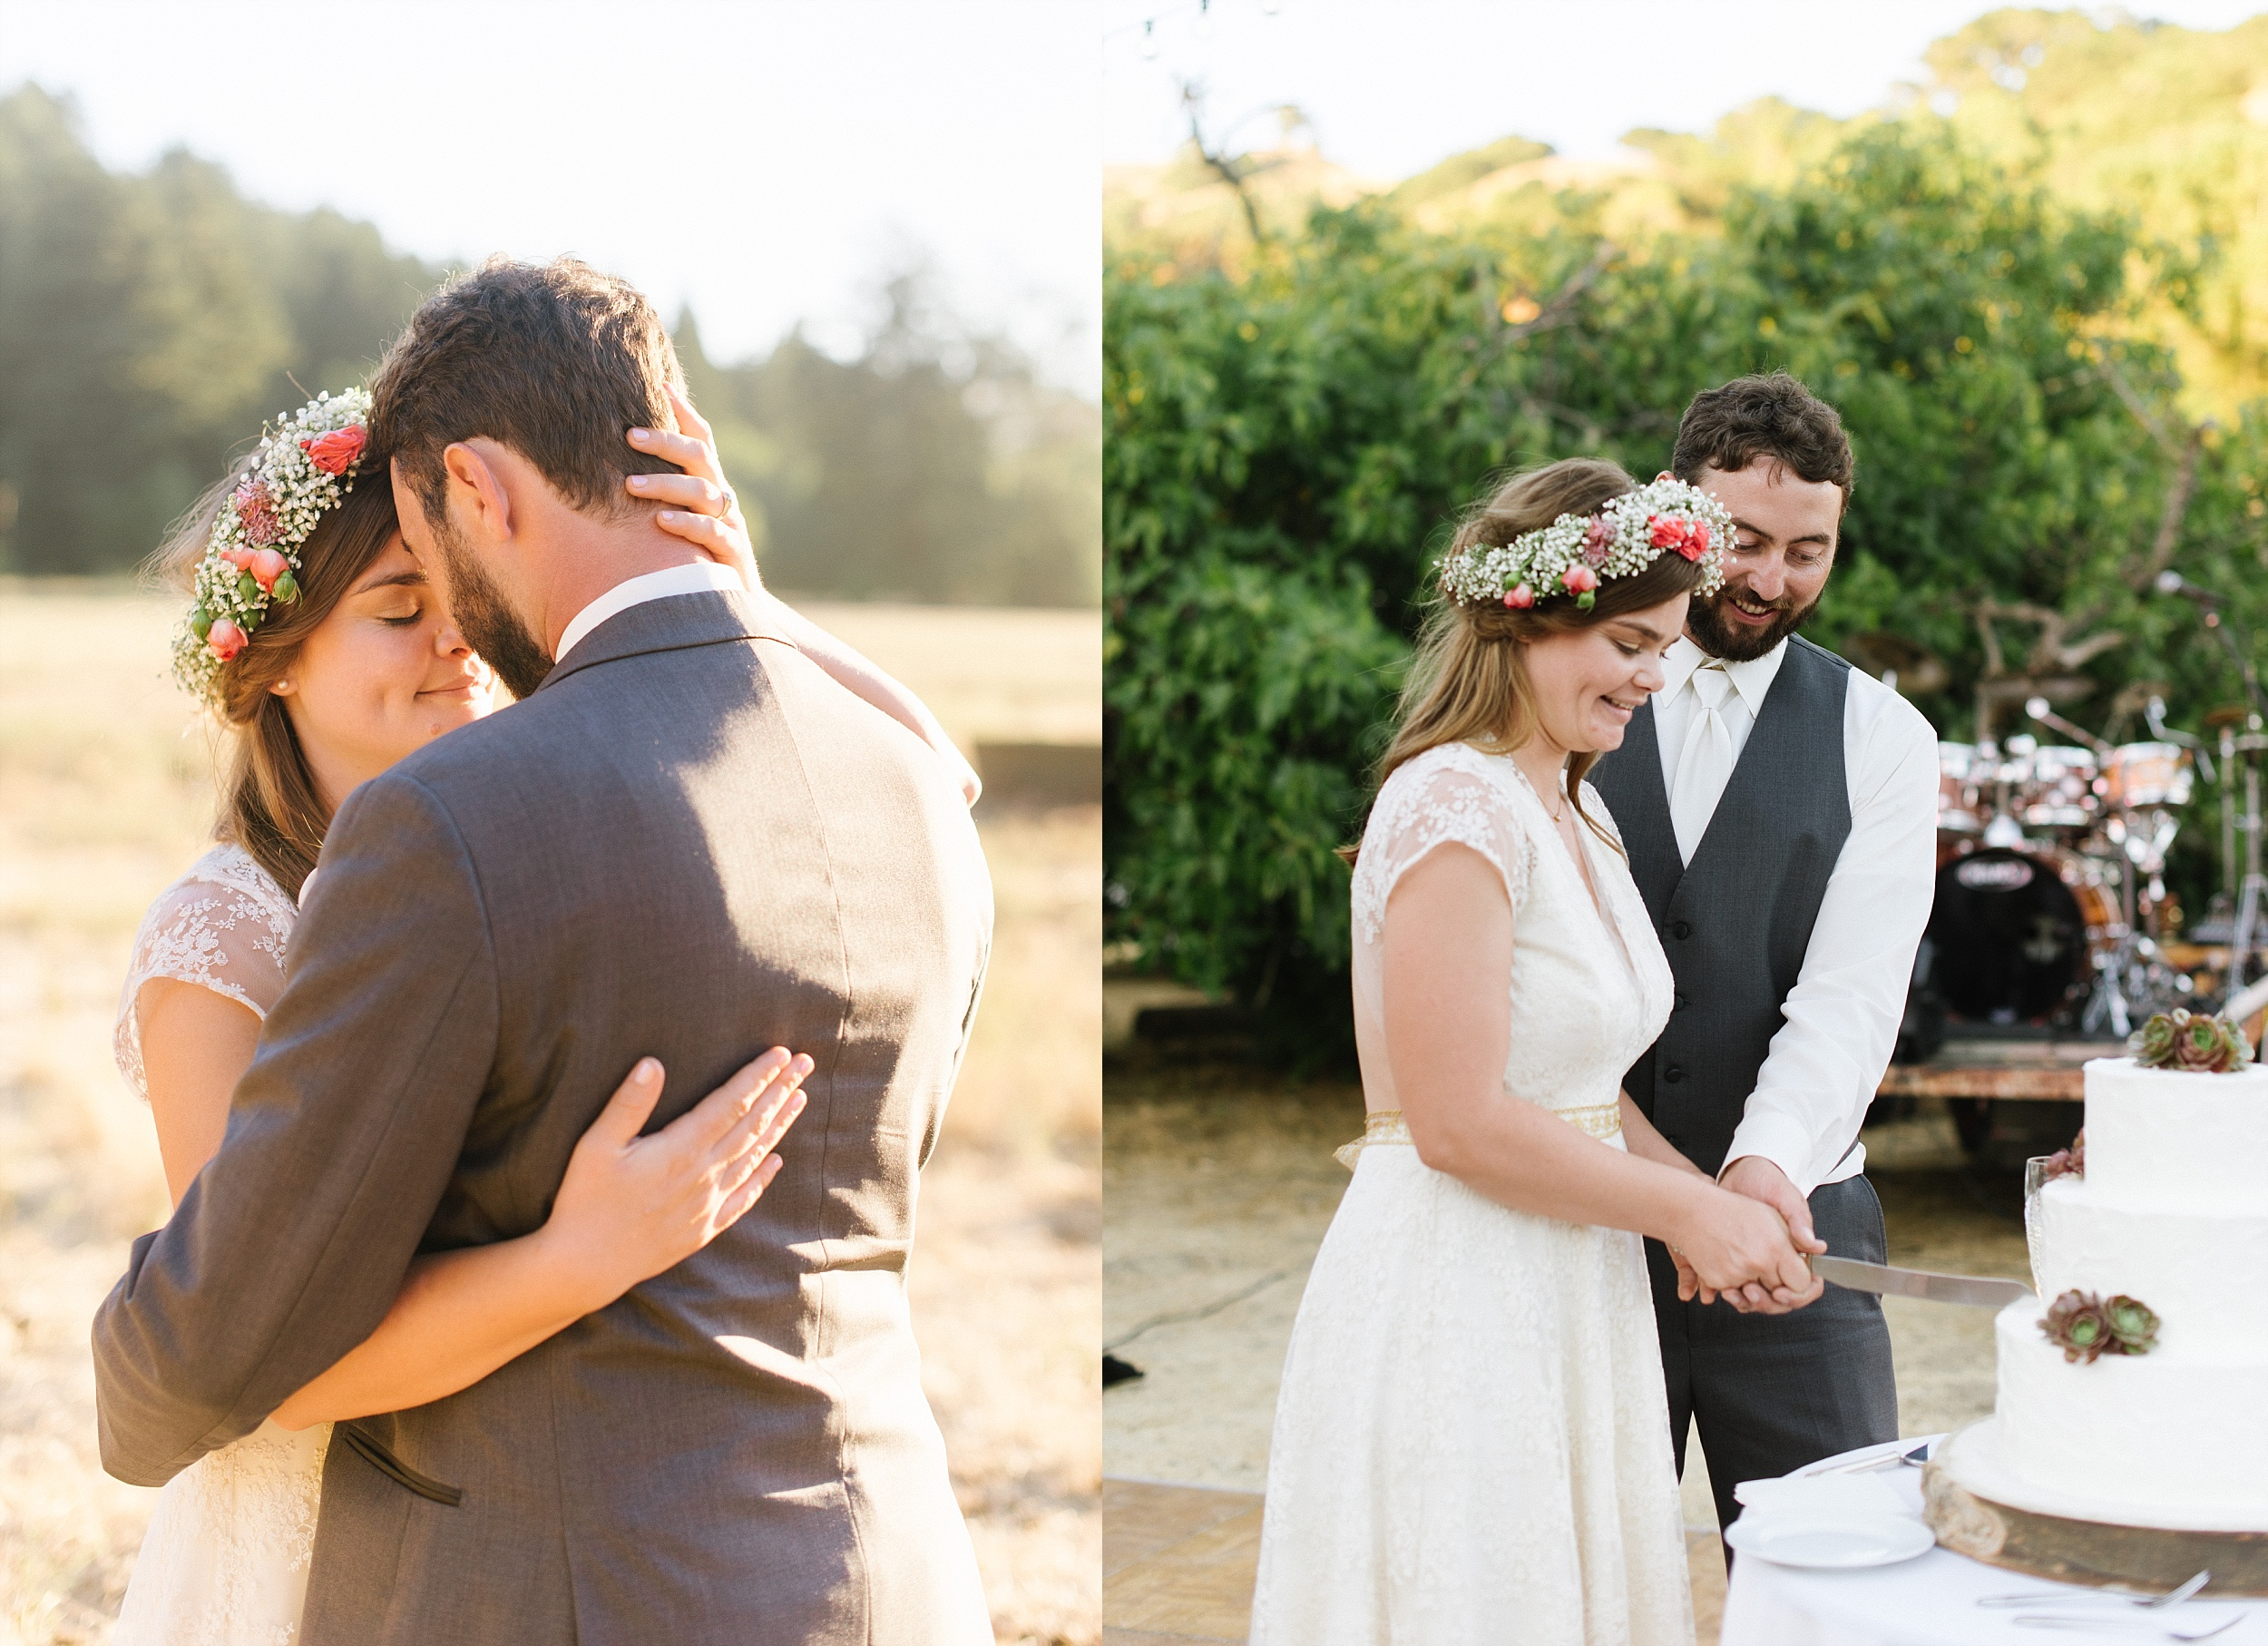 fairfax_ranch_wedding_chelsea_dier_photography_0041.jpg